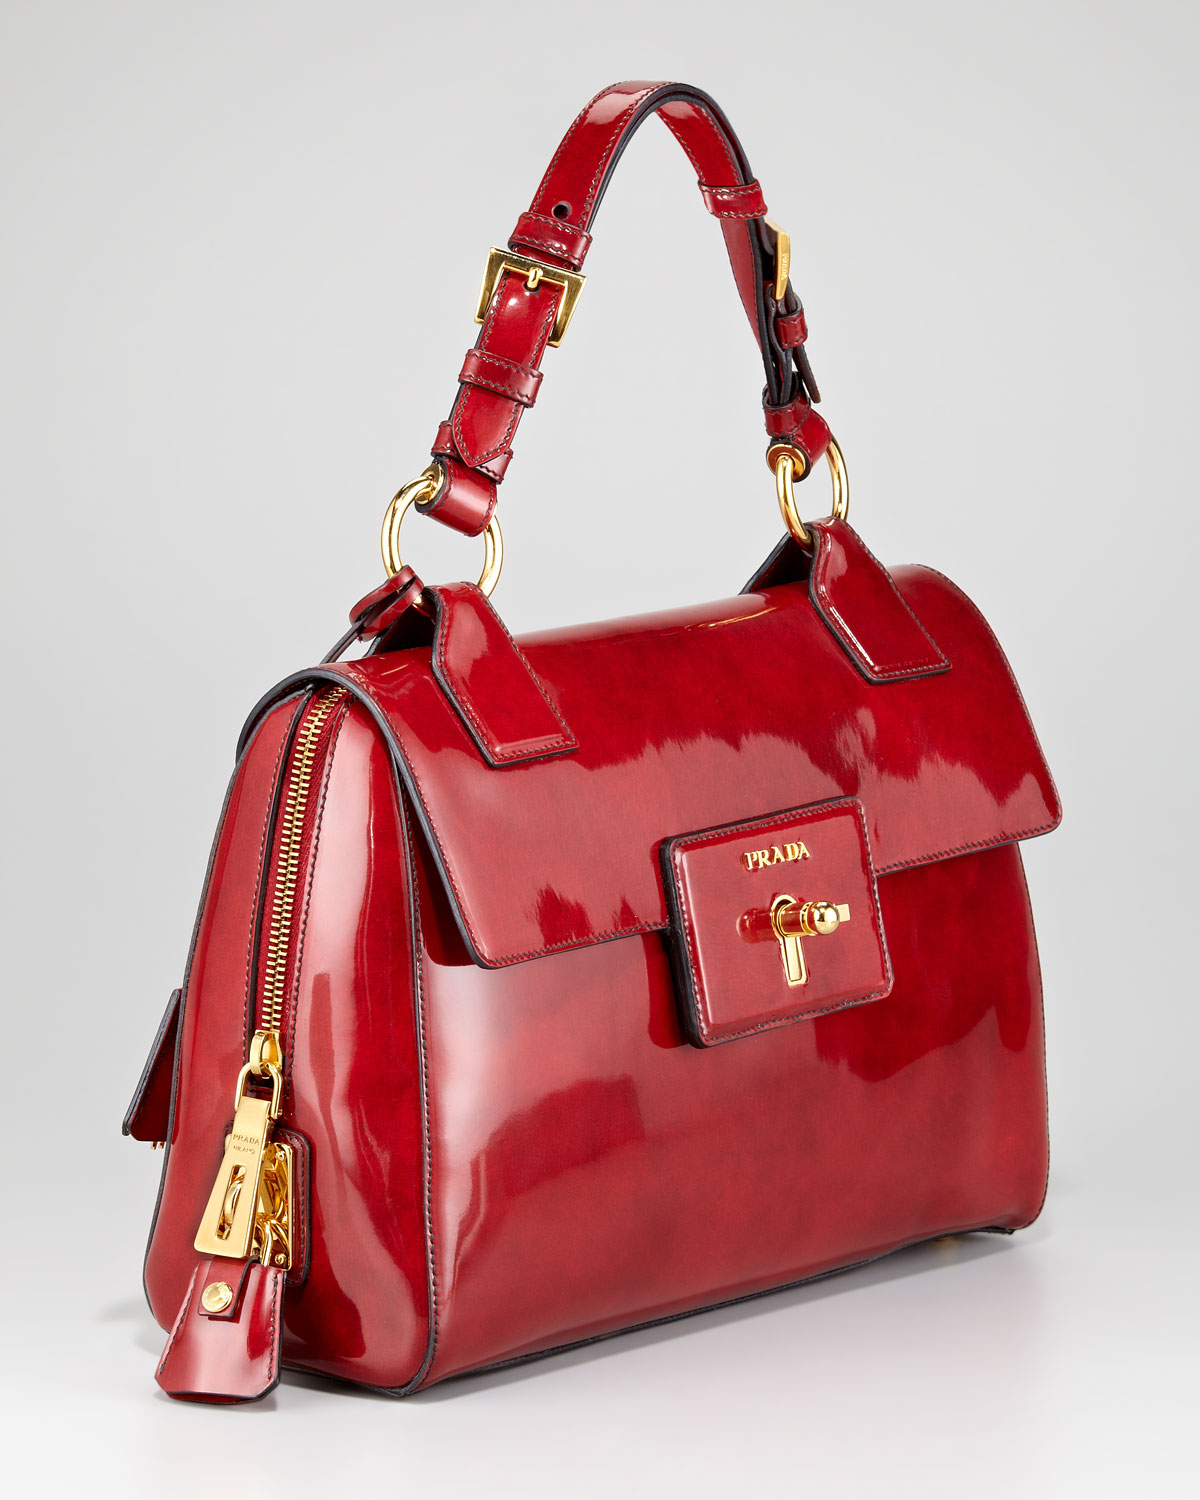 prada shoulder bag red